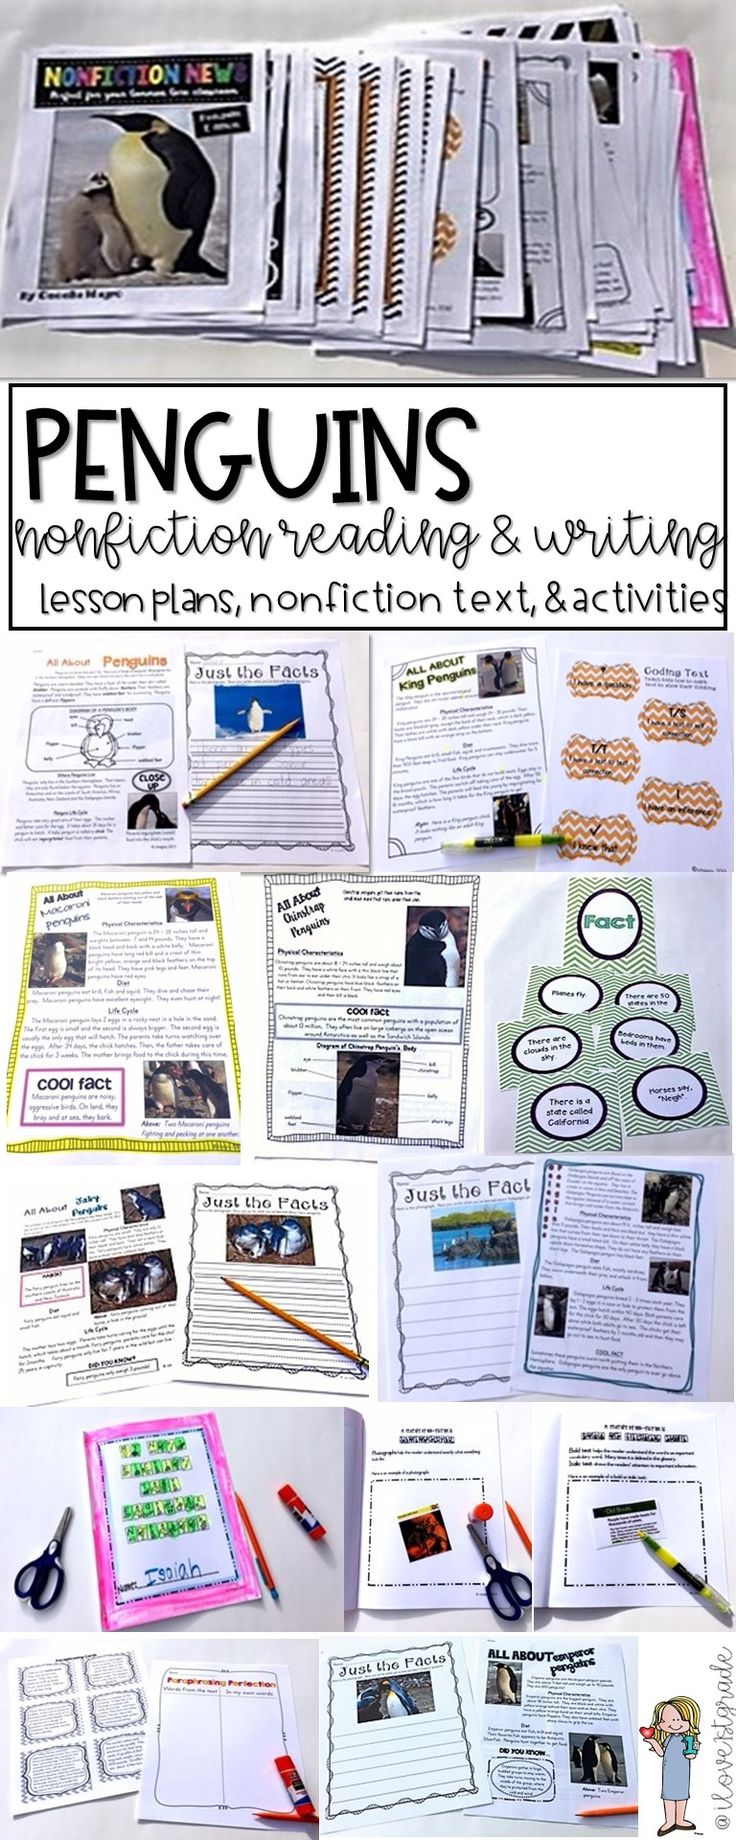 This 124 page product is what you need to implement ELA Common Core Standards in your classroom. It includes nonfiction articles for close reading on penguins - All About Penguins, King, African, Gentoo, Adelie, Galapagos, Chinstrap, Fairy, Emperor, Rockhopper and Macaroni Penguins. The nonfiction articles include stunning photographs and nonfiction text features. They can be used in guided reading groups or whole class. They are a great way to practice close reading and answering text…